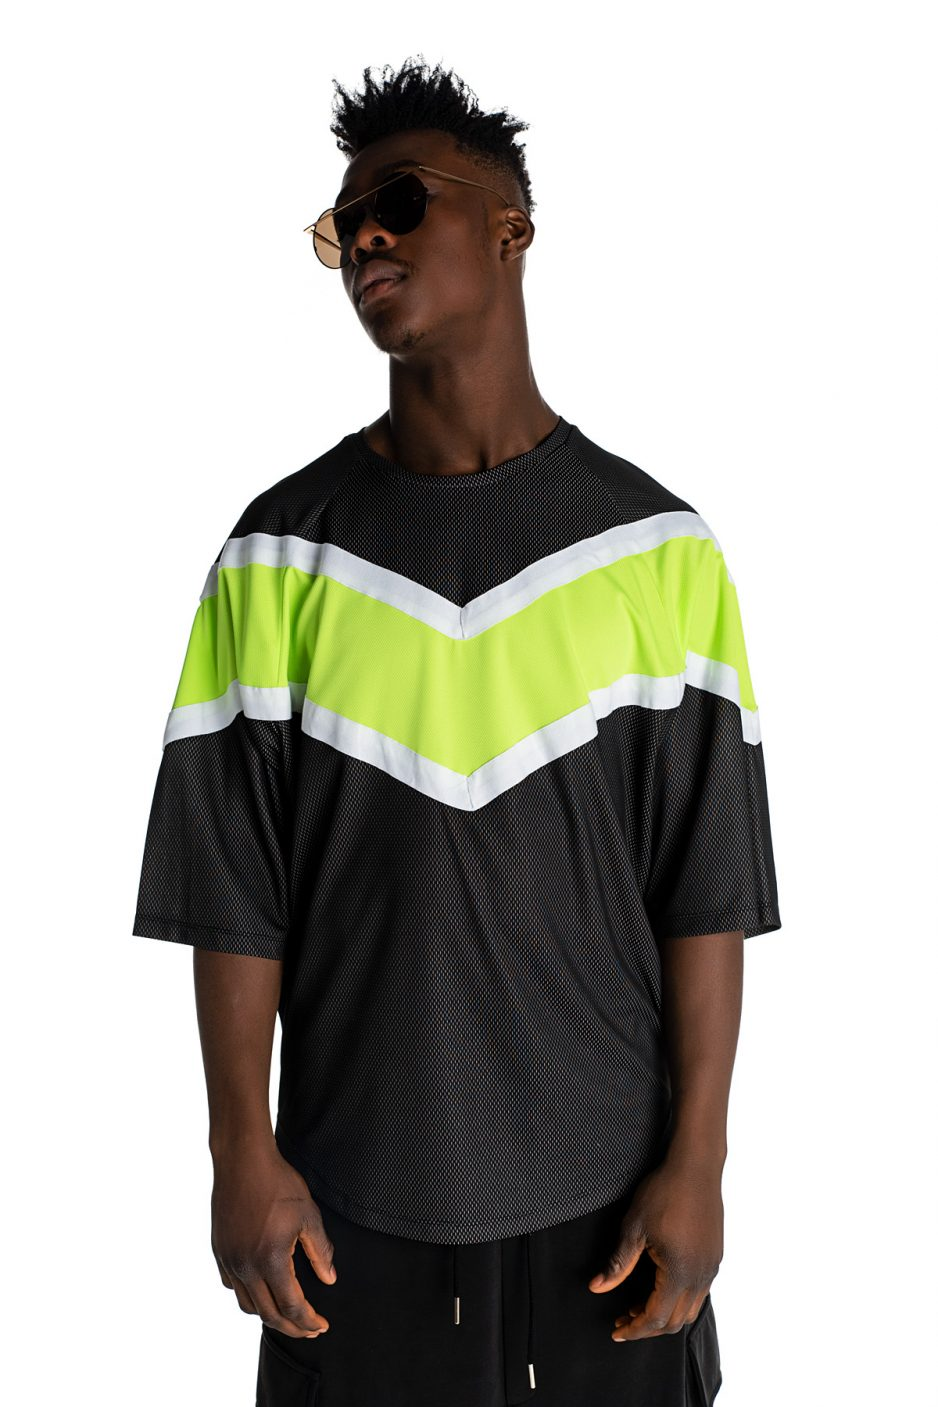 Wide t-shirt with neon details